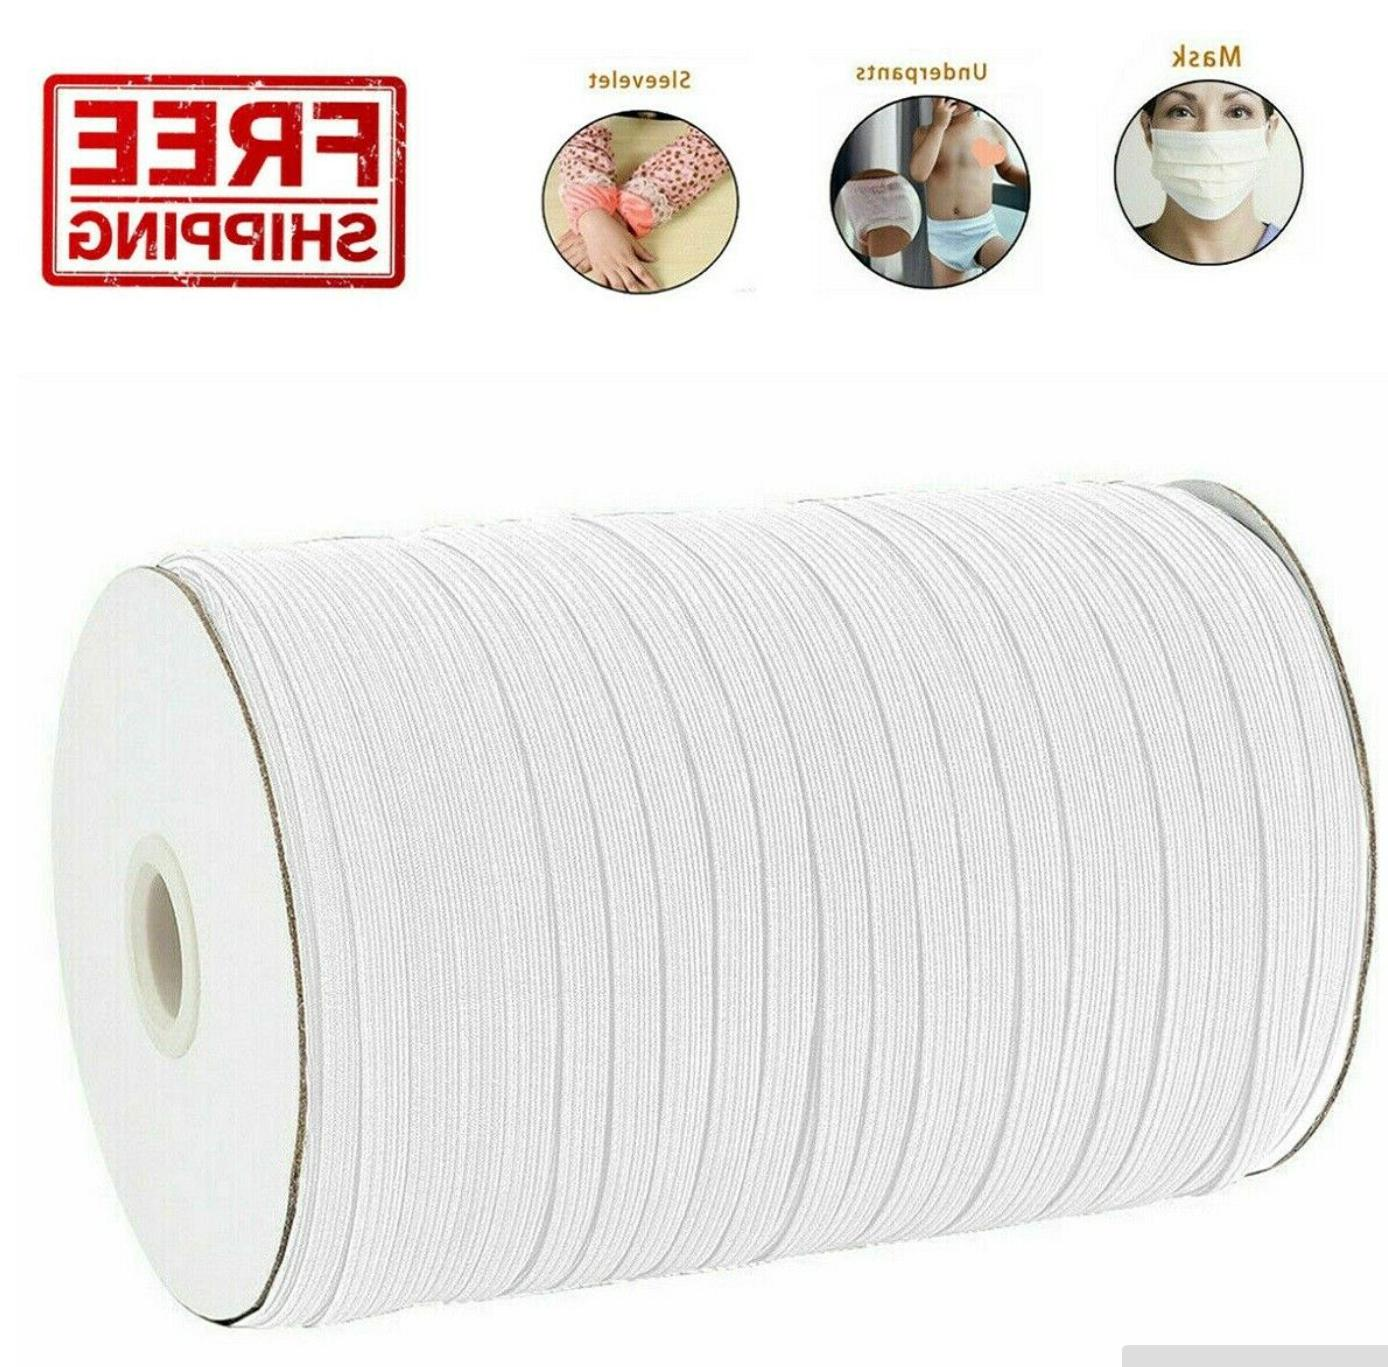 1/8 Elastic Band Cord Sewing   For Mask Sewing